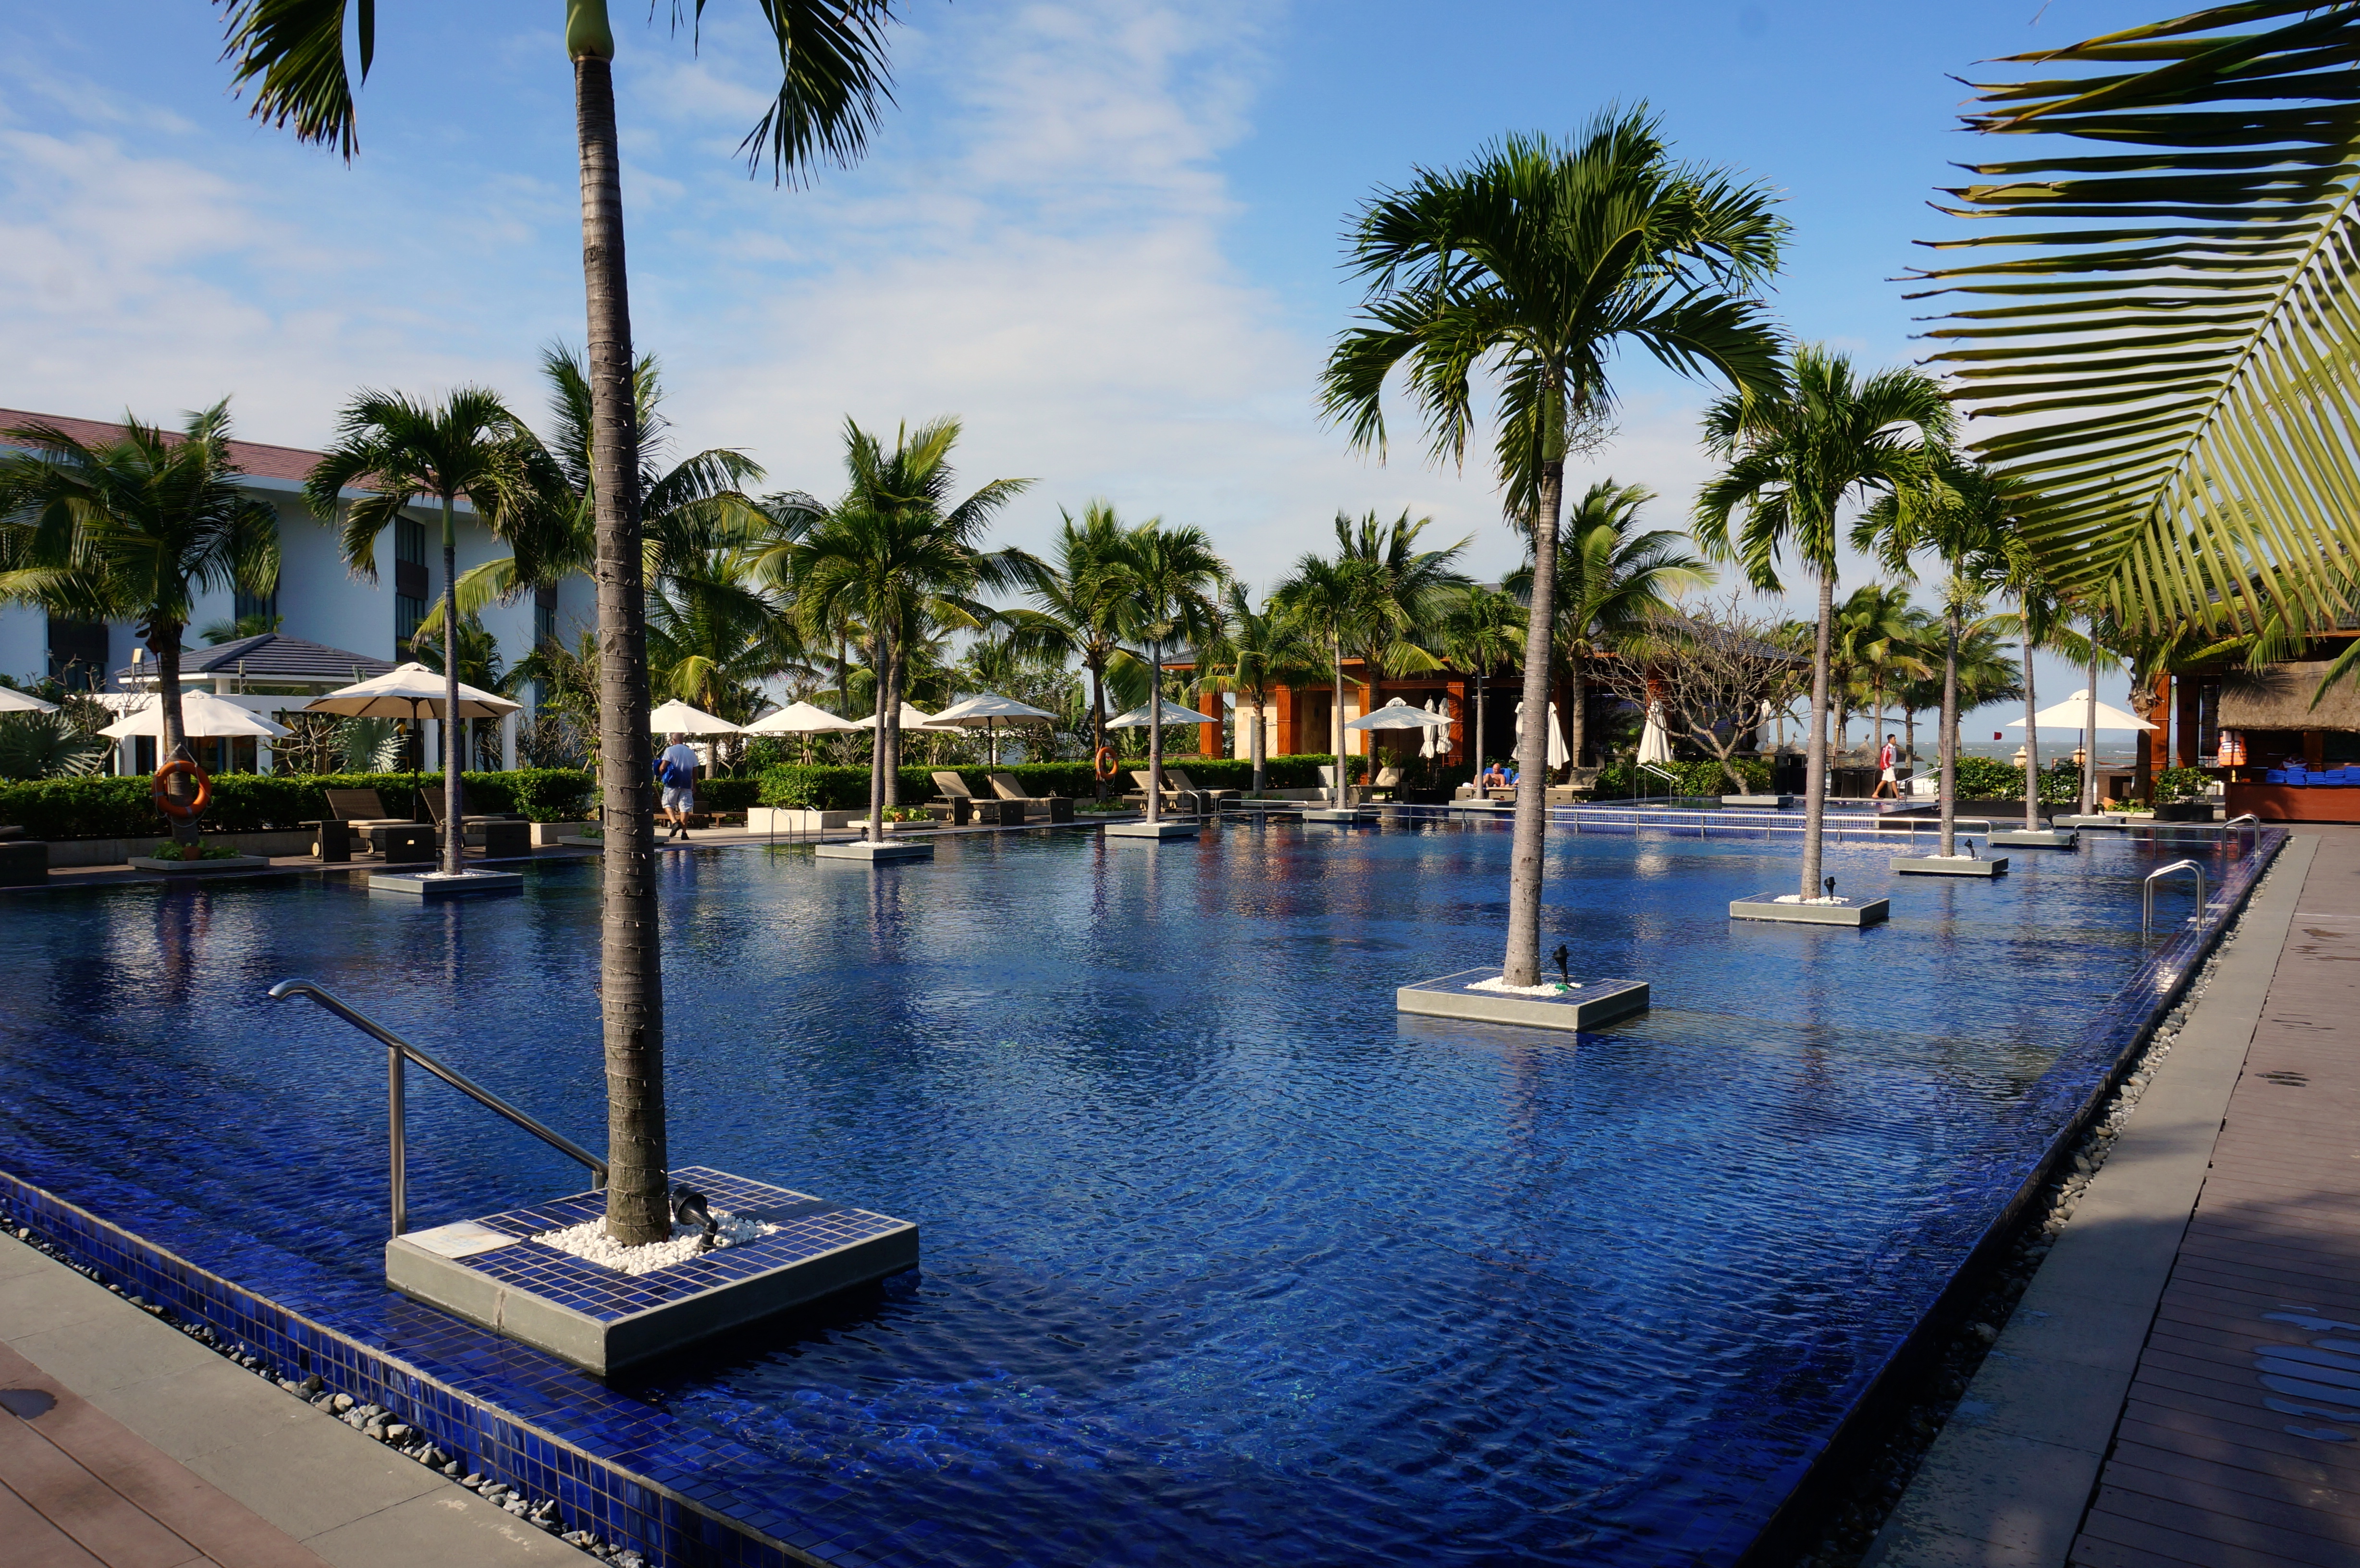 Sunrise Hoi An Beach Resort: Accommodation Review